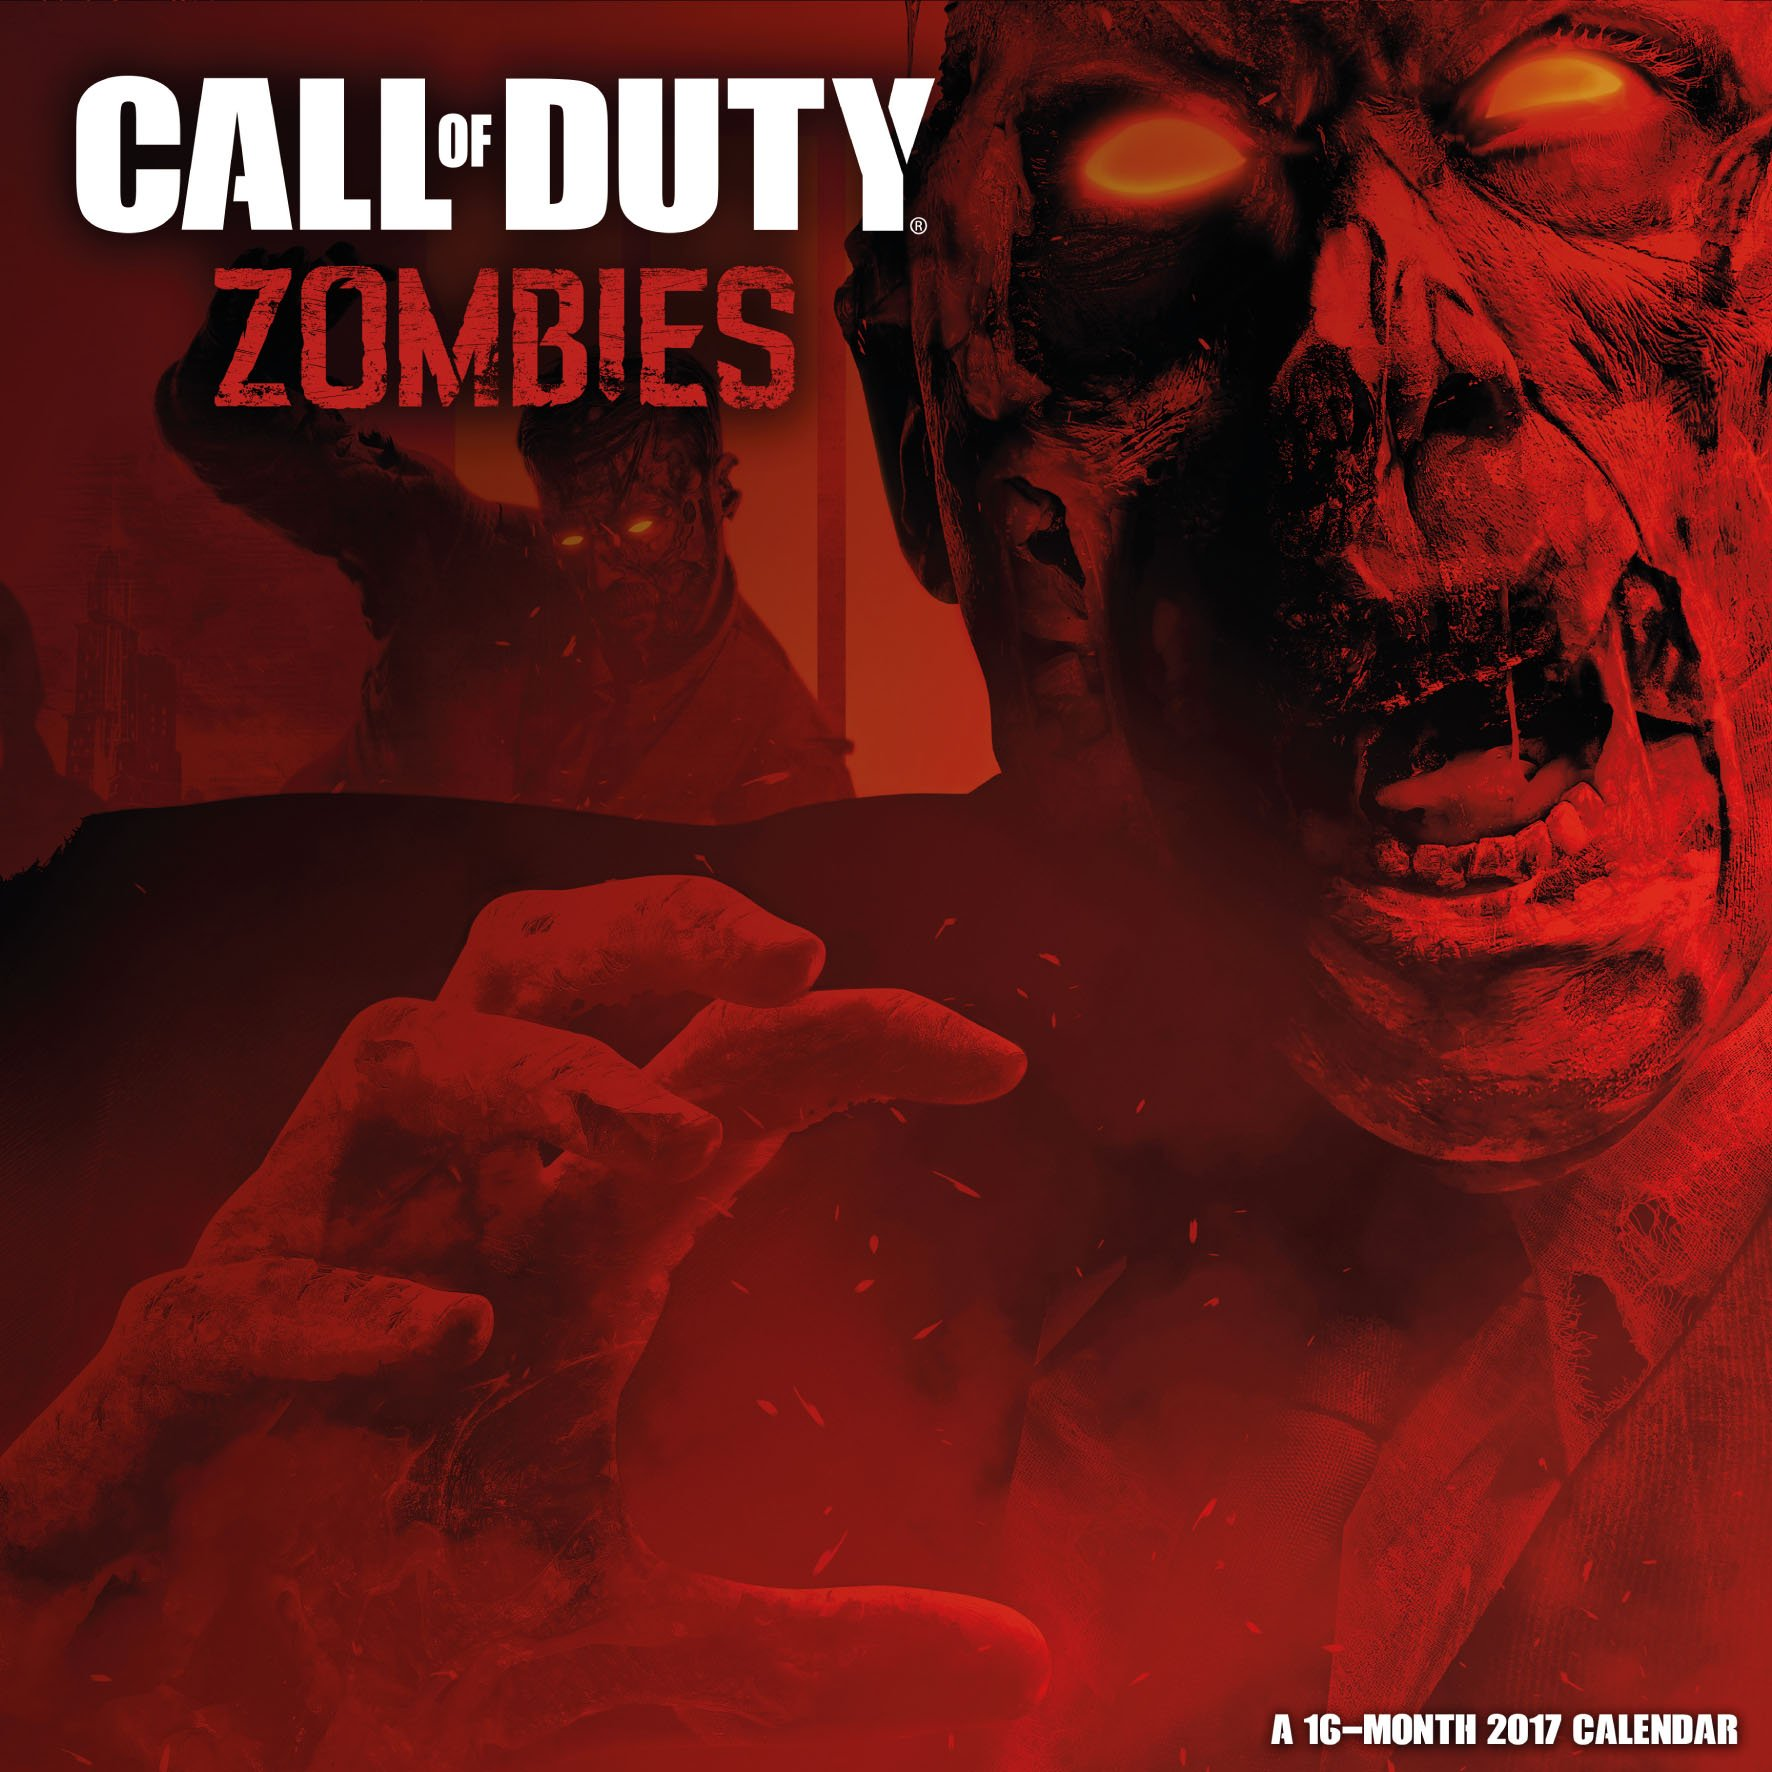 zombies in call of duty